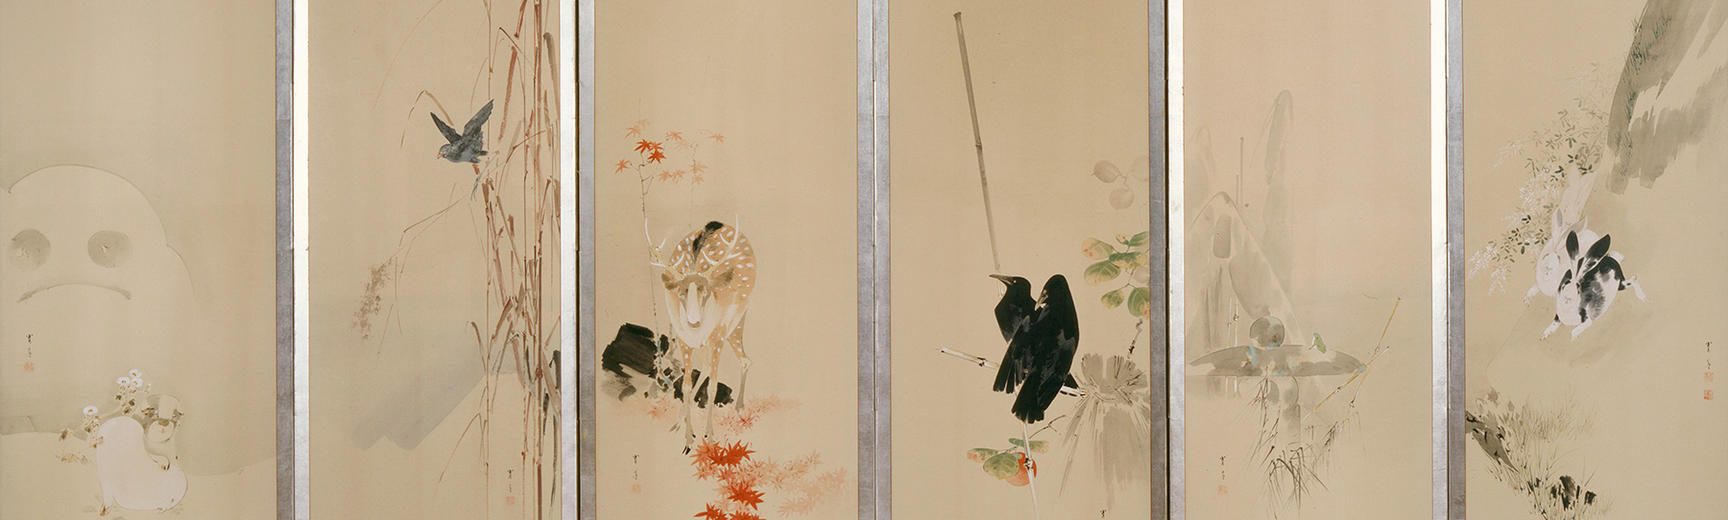 Japanese screen showing 6 of the 12 months of the year